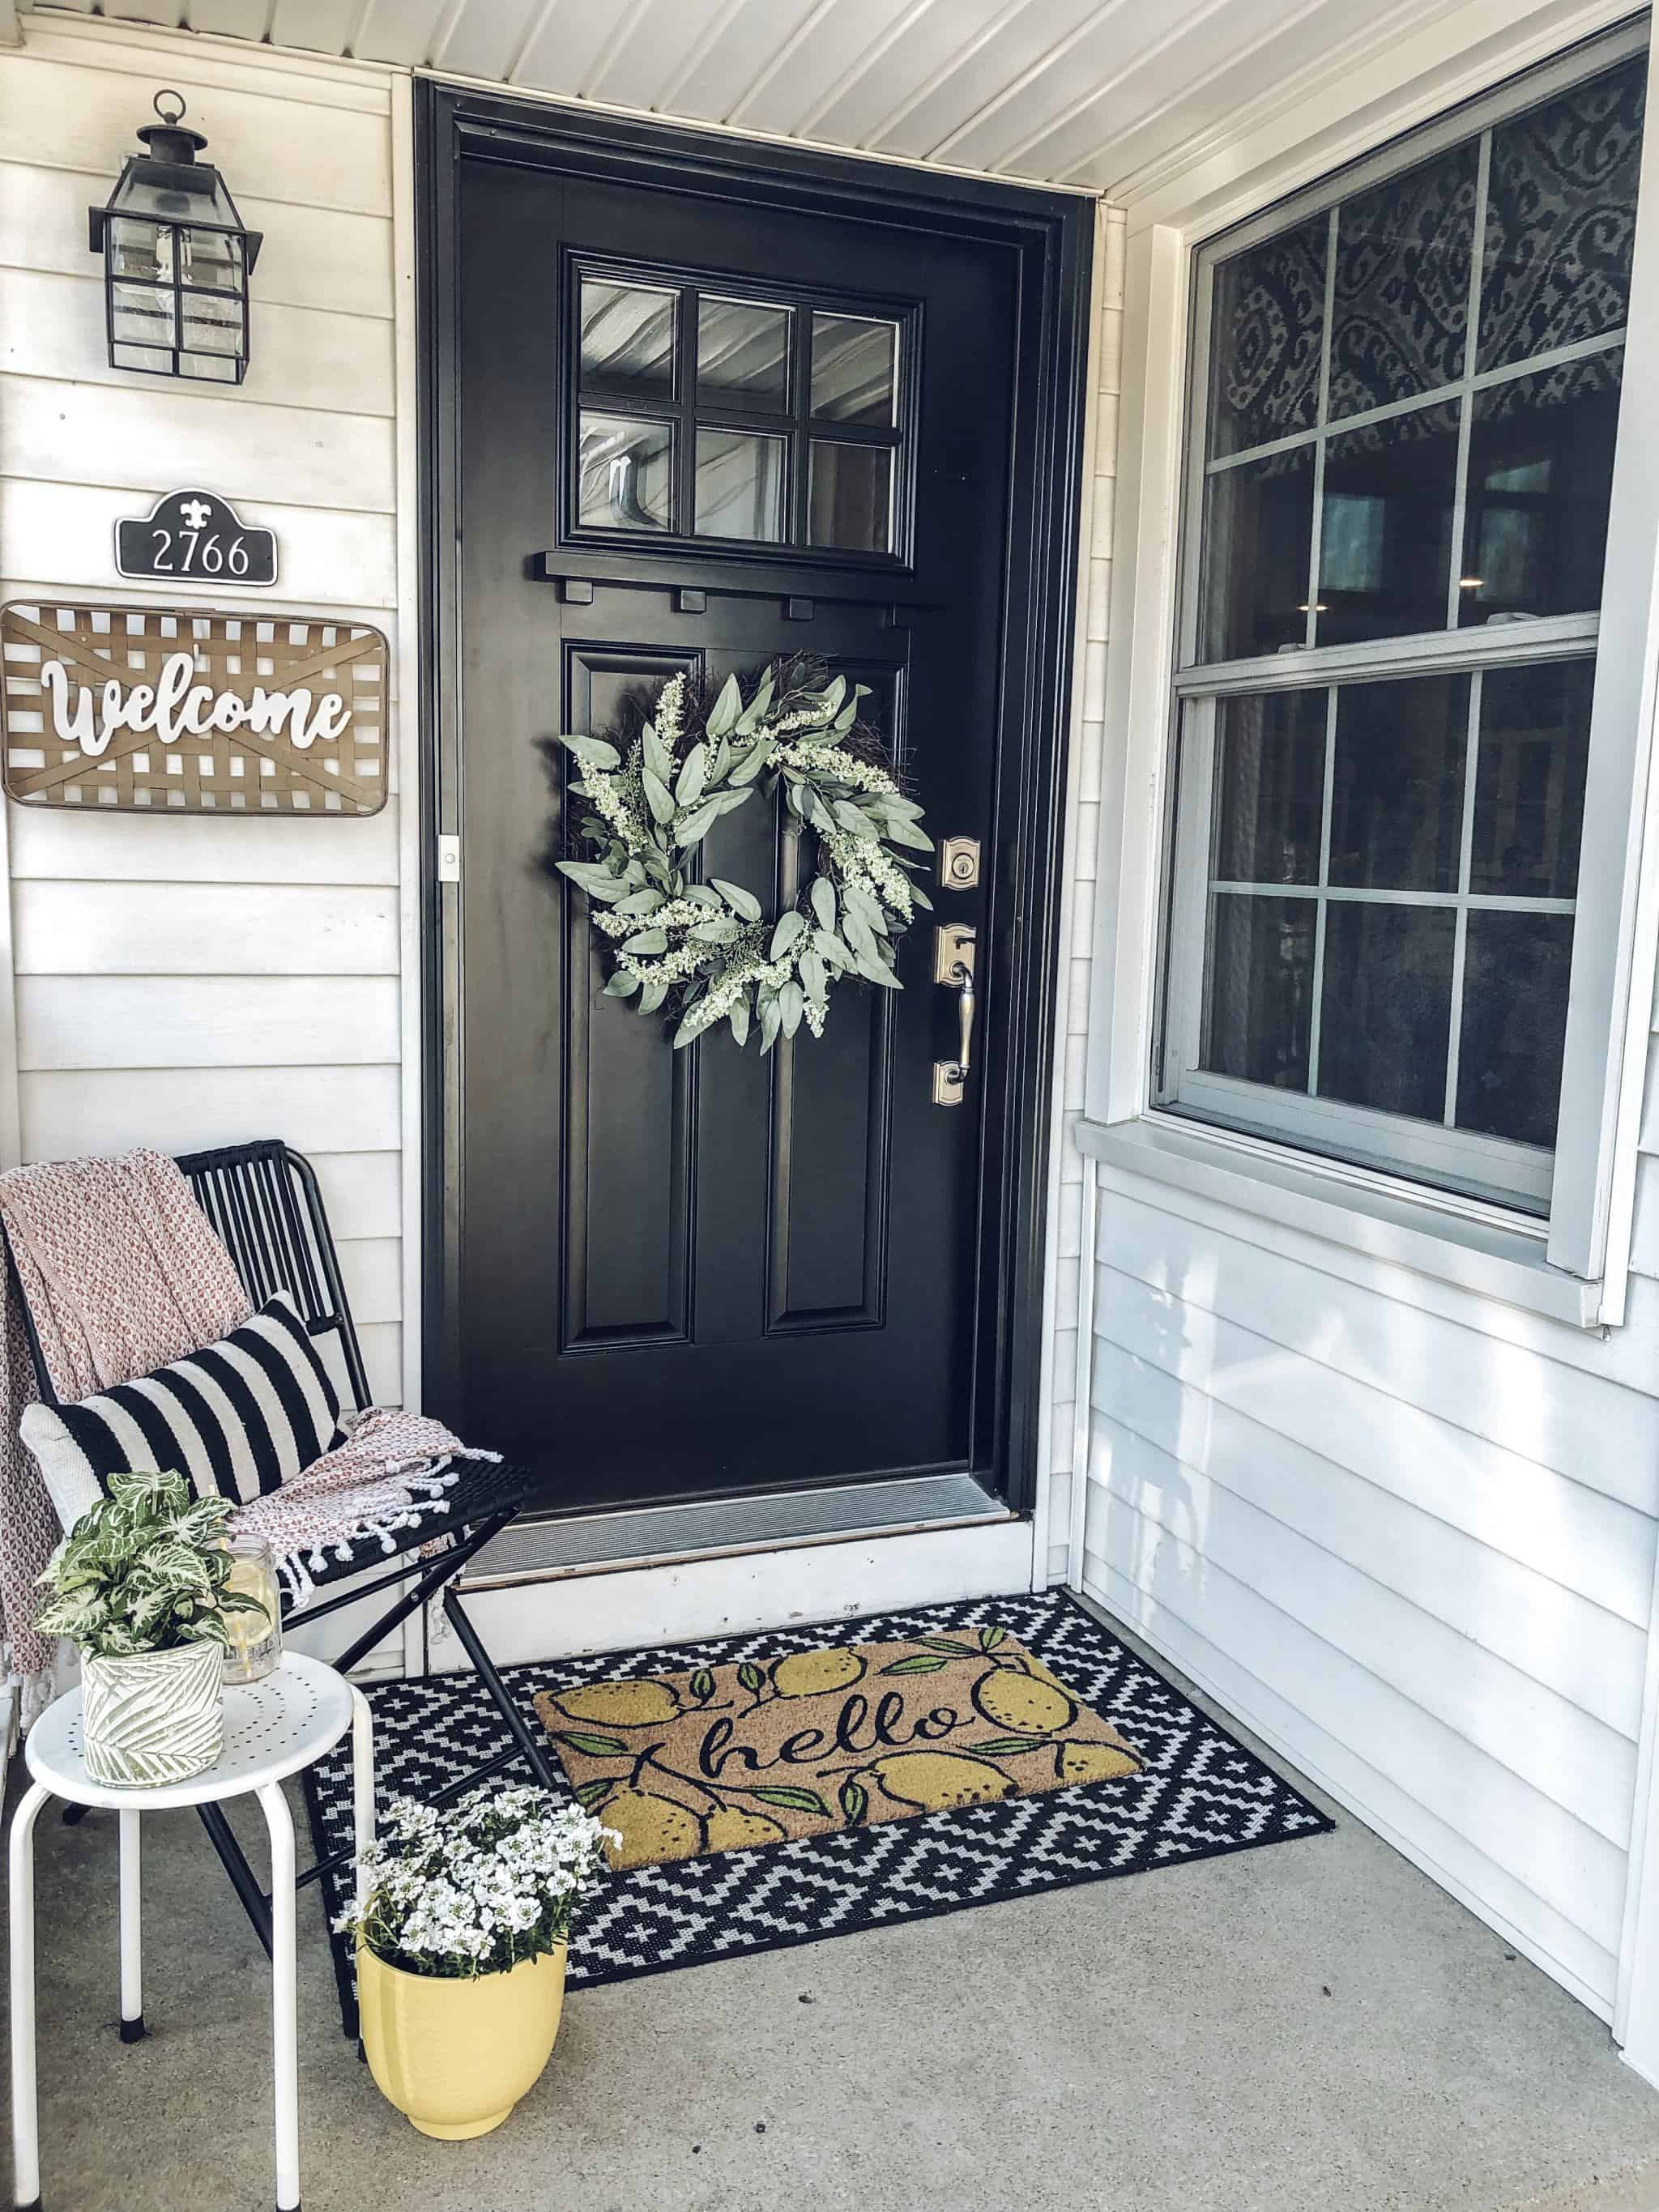 Small Front Porch Decor: 14 Budget Friendly Decorating Ideas